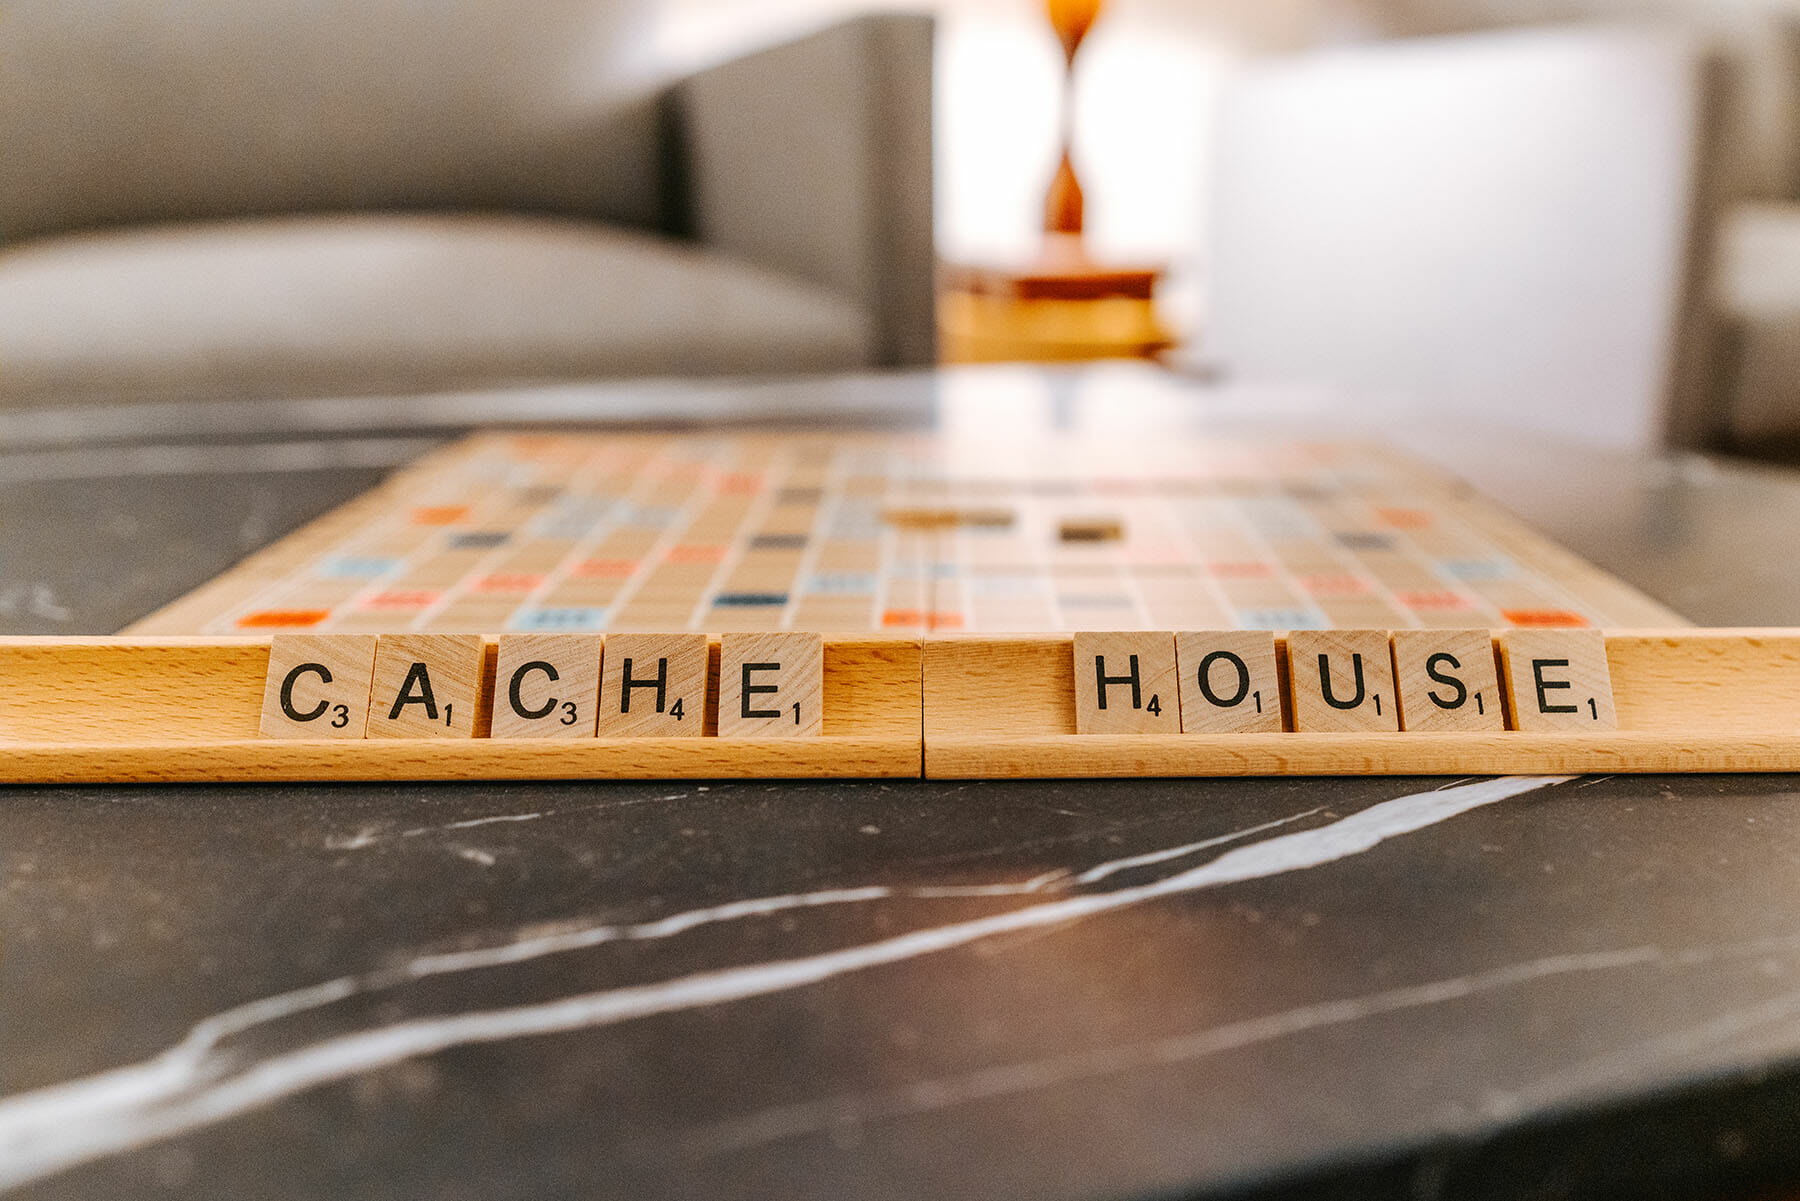 Cache House spelled out in scrabble letters in community room